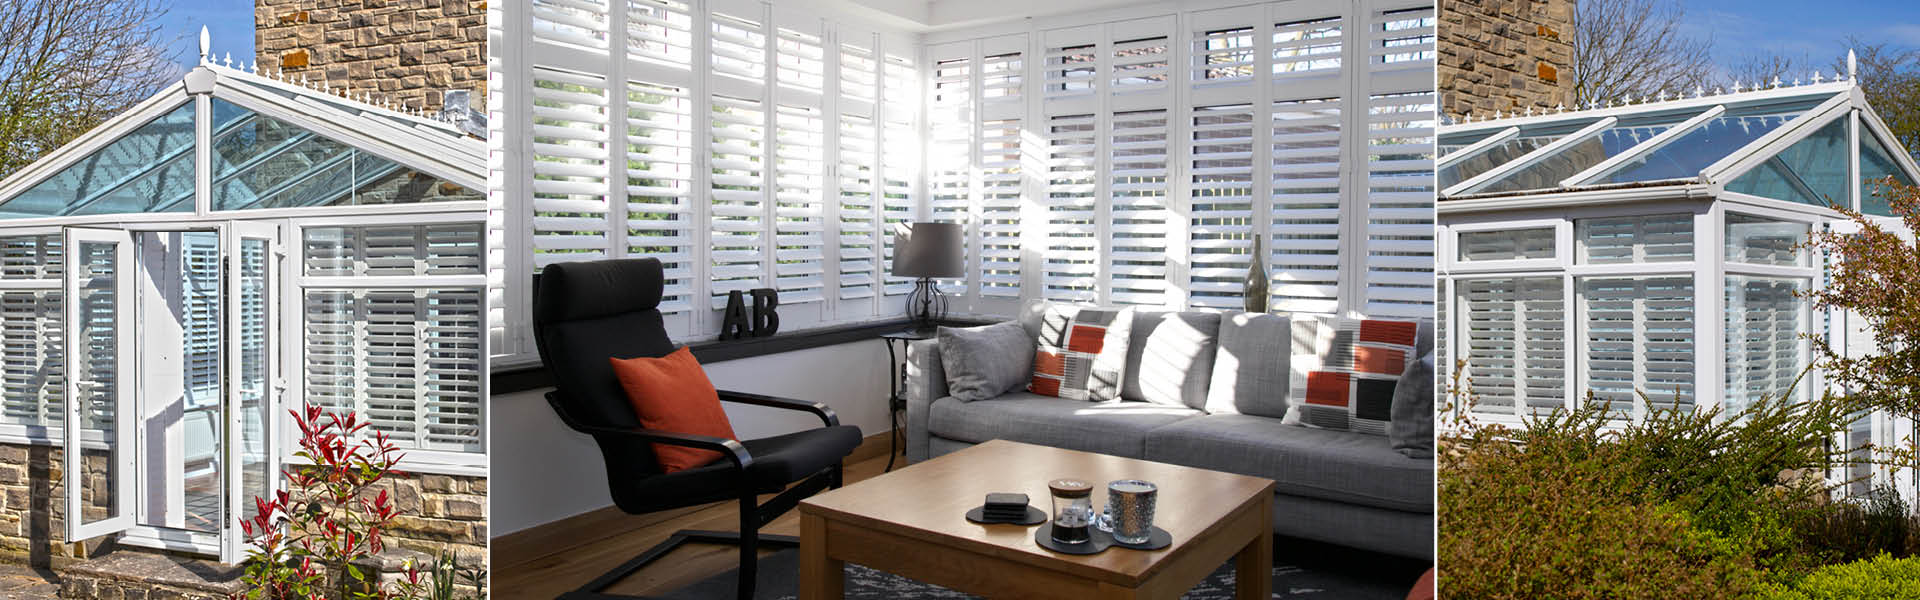 conservatory shutters from shutterstyle